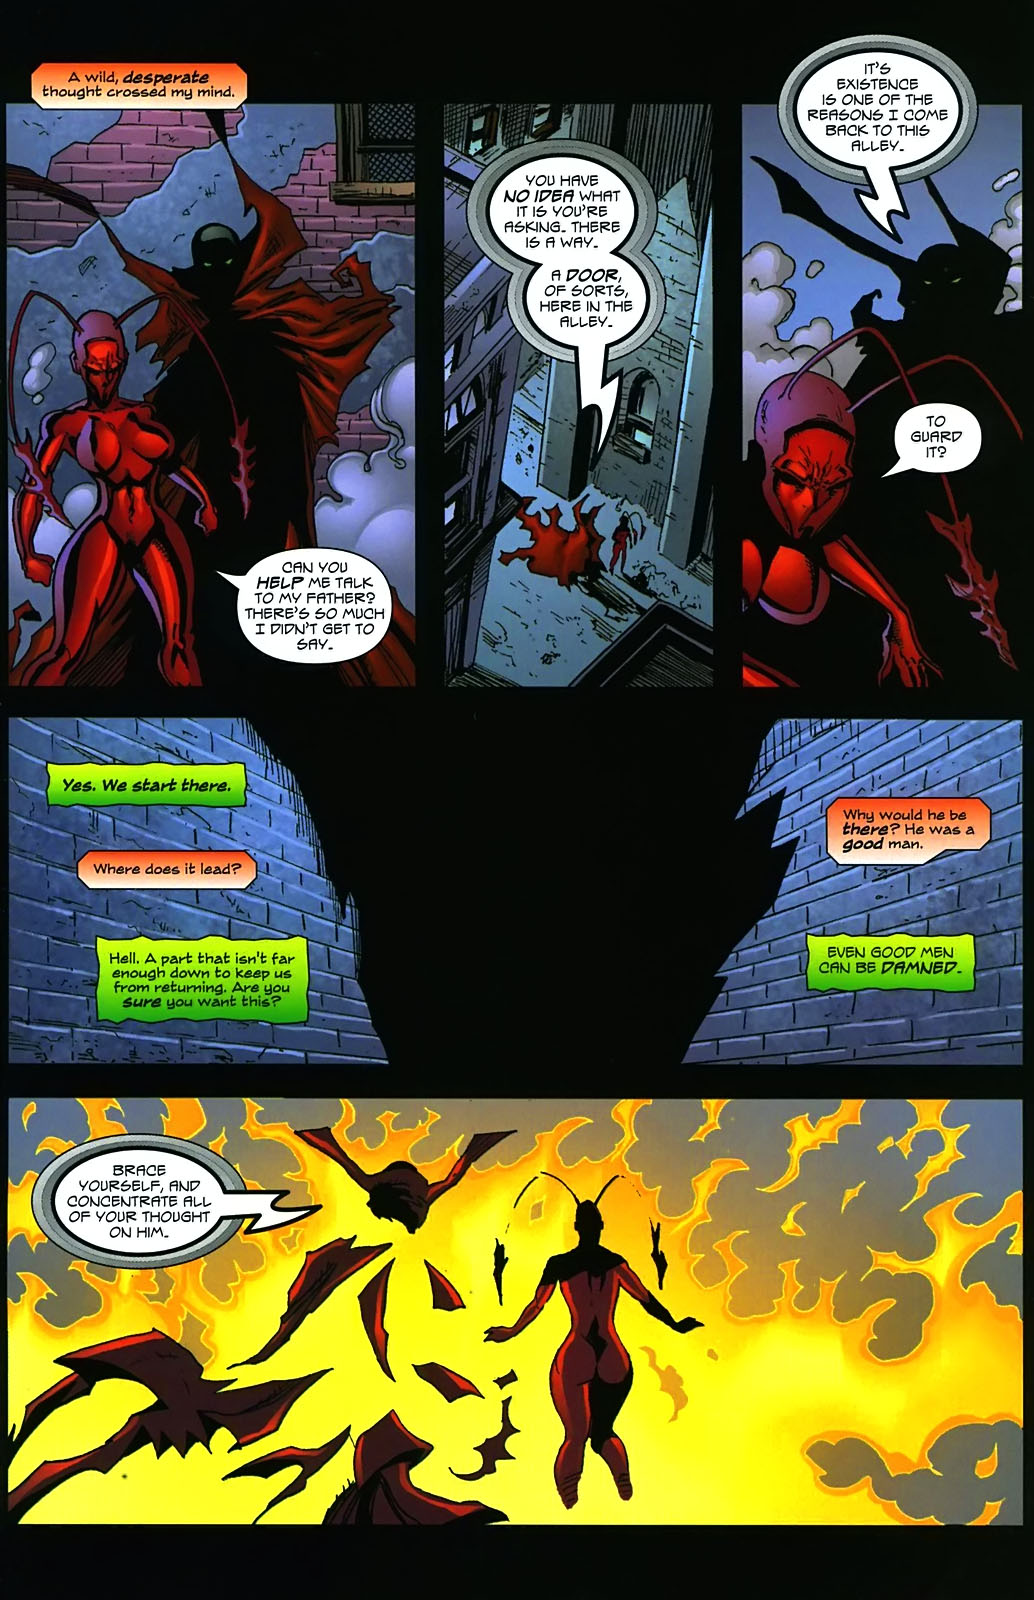 Read online Ant comic -  Issue #3 - 21